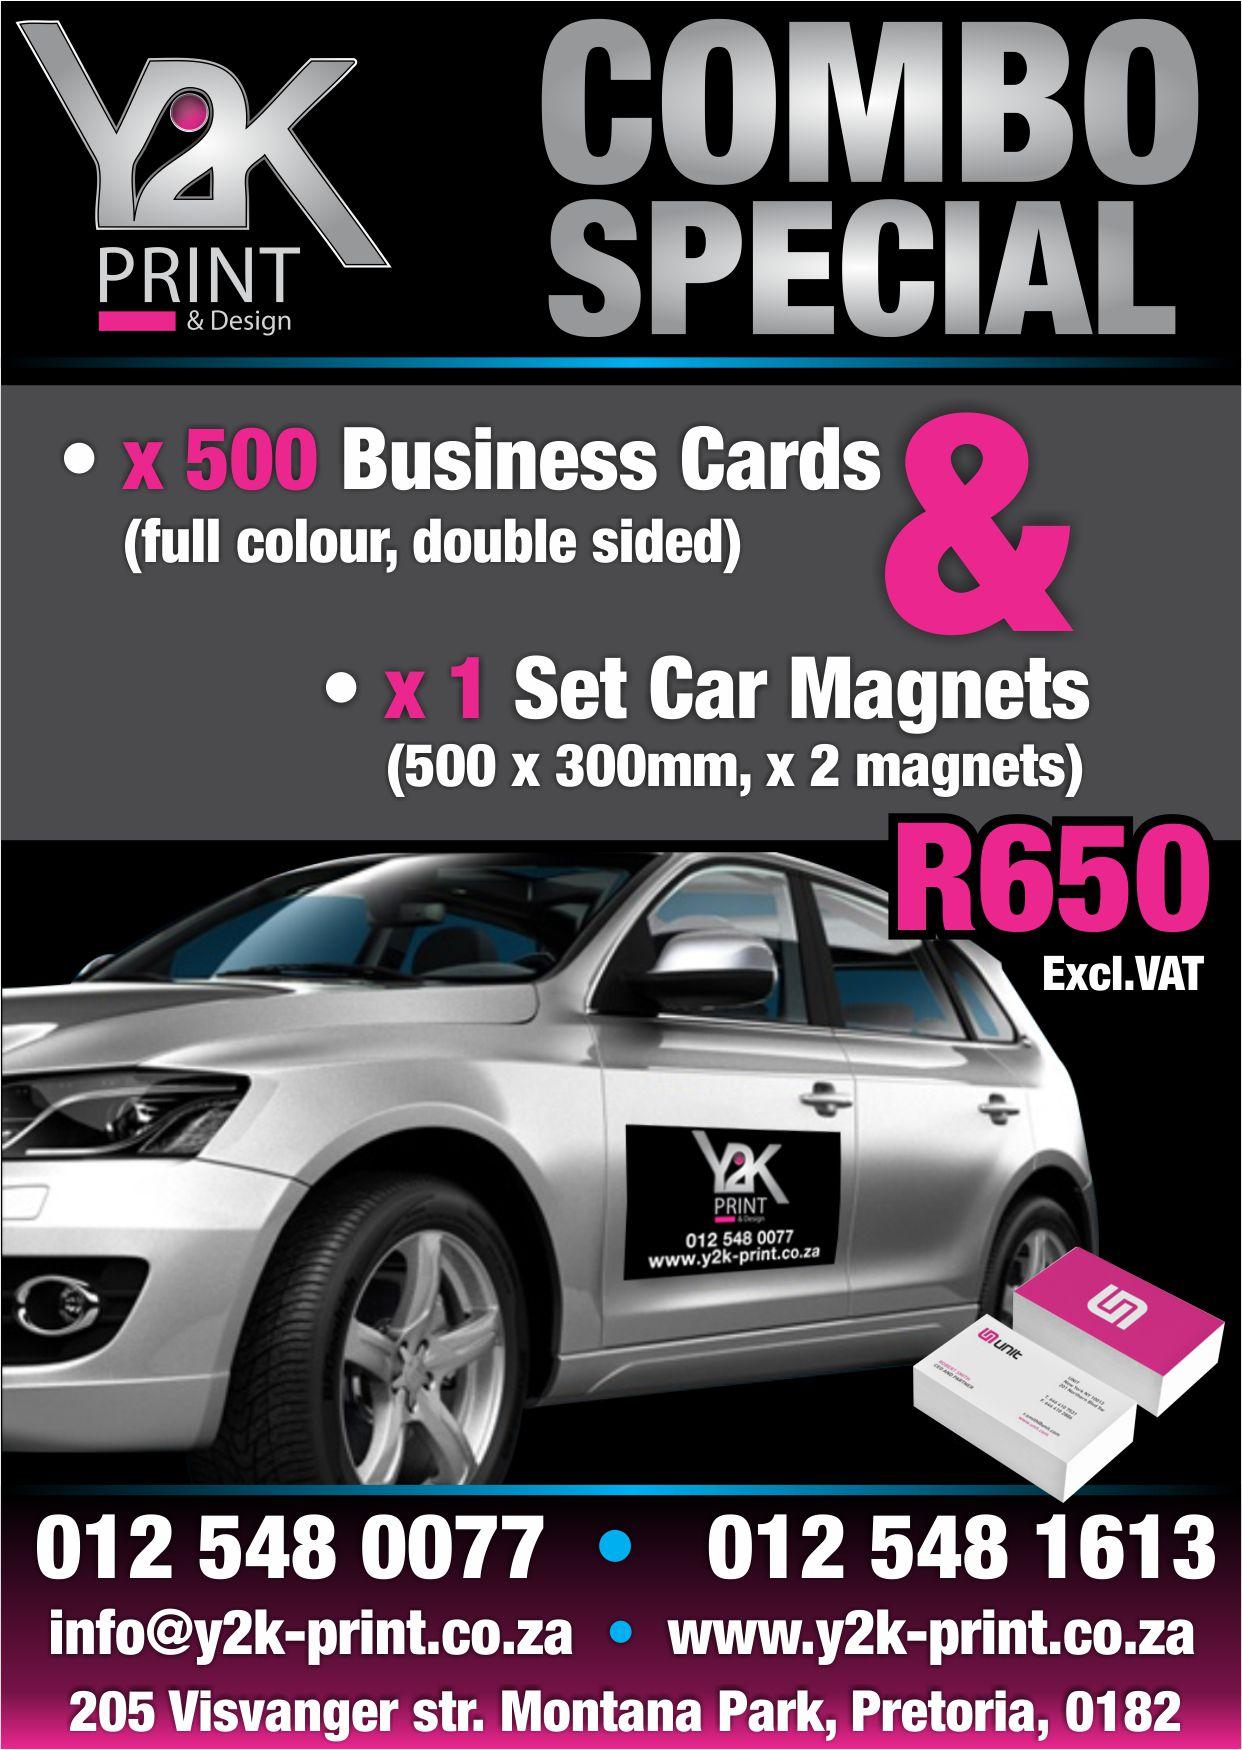 Business cards and car magnets special at y2k print junk mail business cards and car magnets special at y2k print reheart Image collections